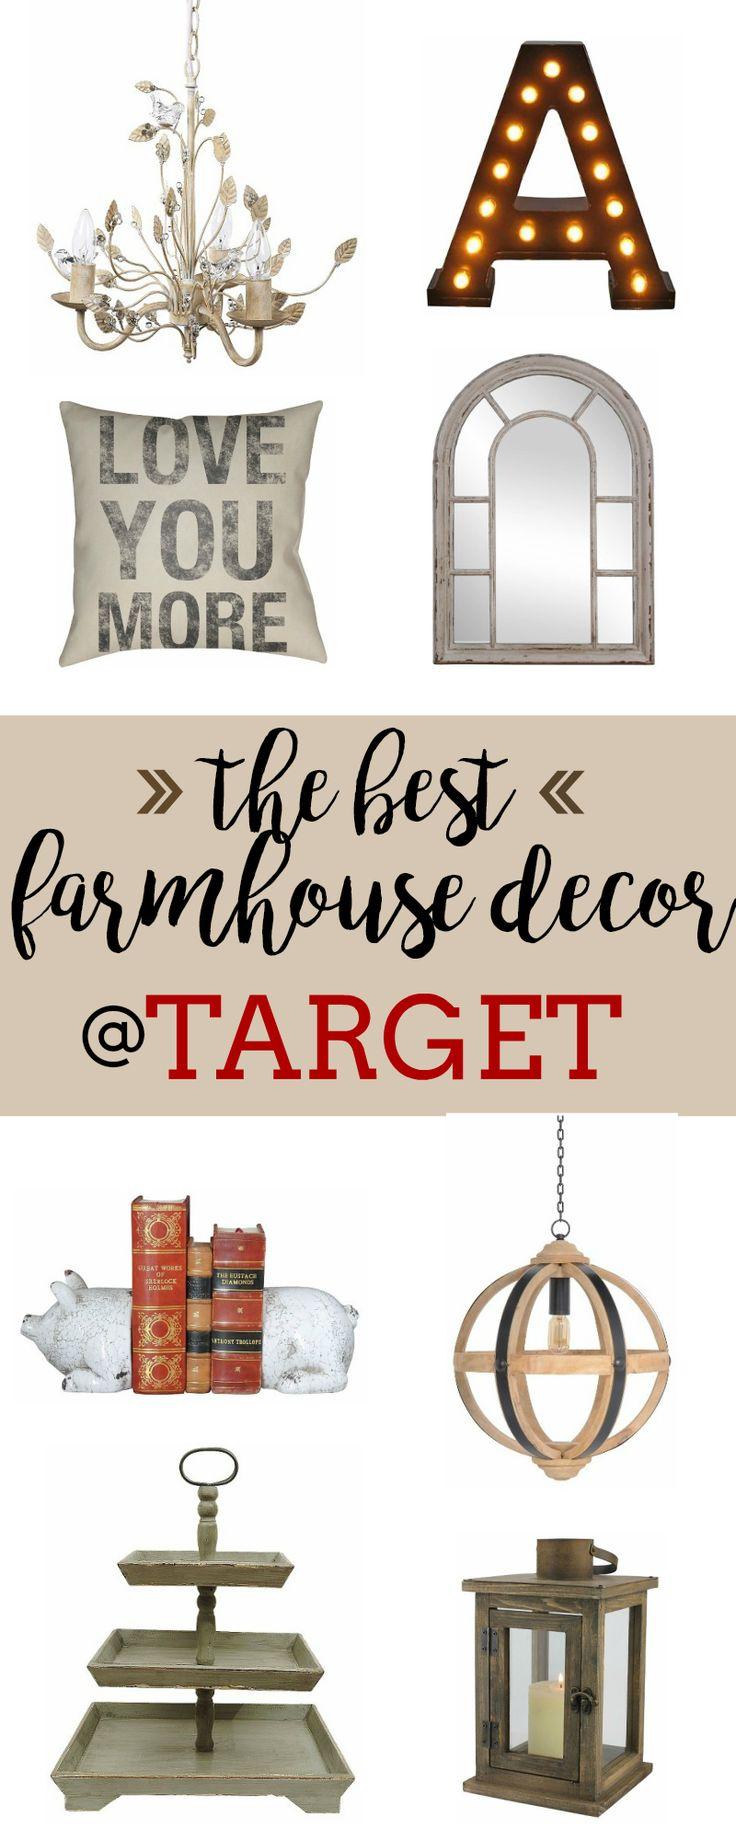 The Best Farmhouse Decor at Target